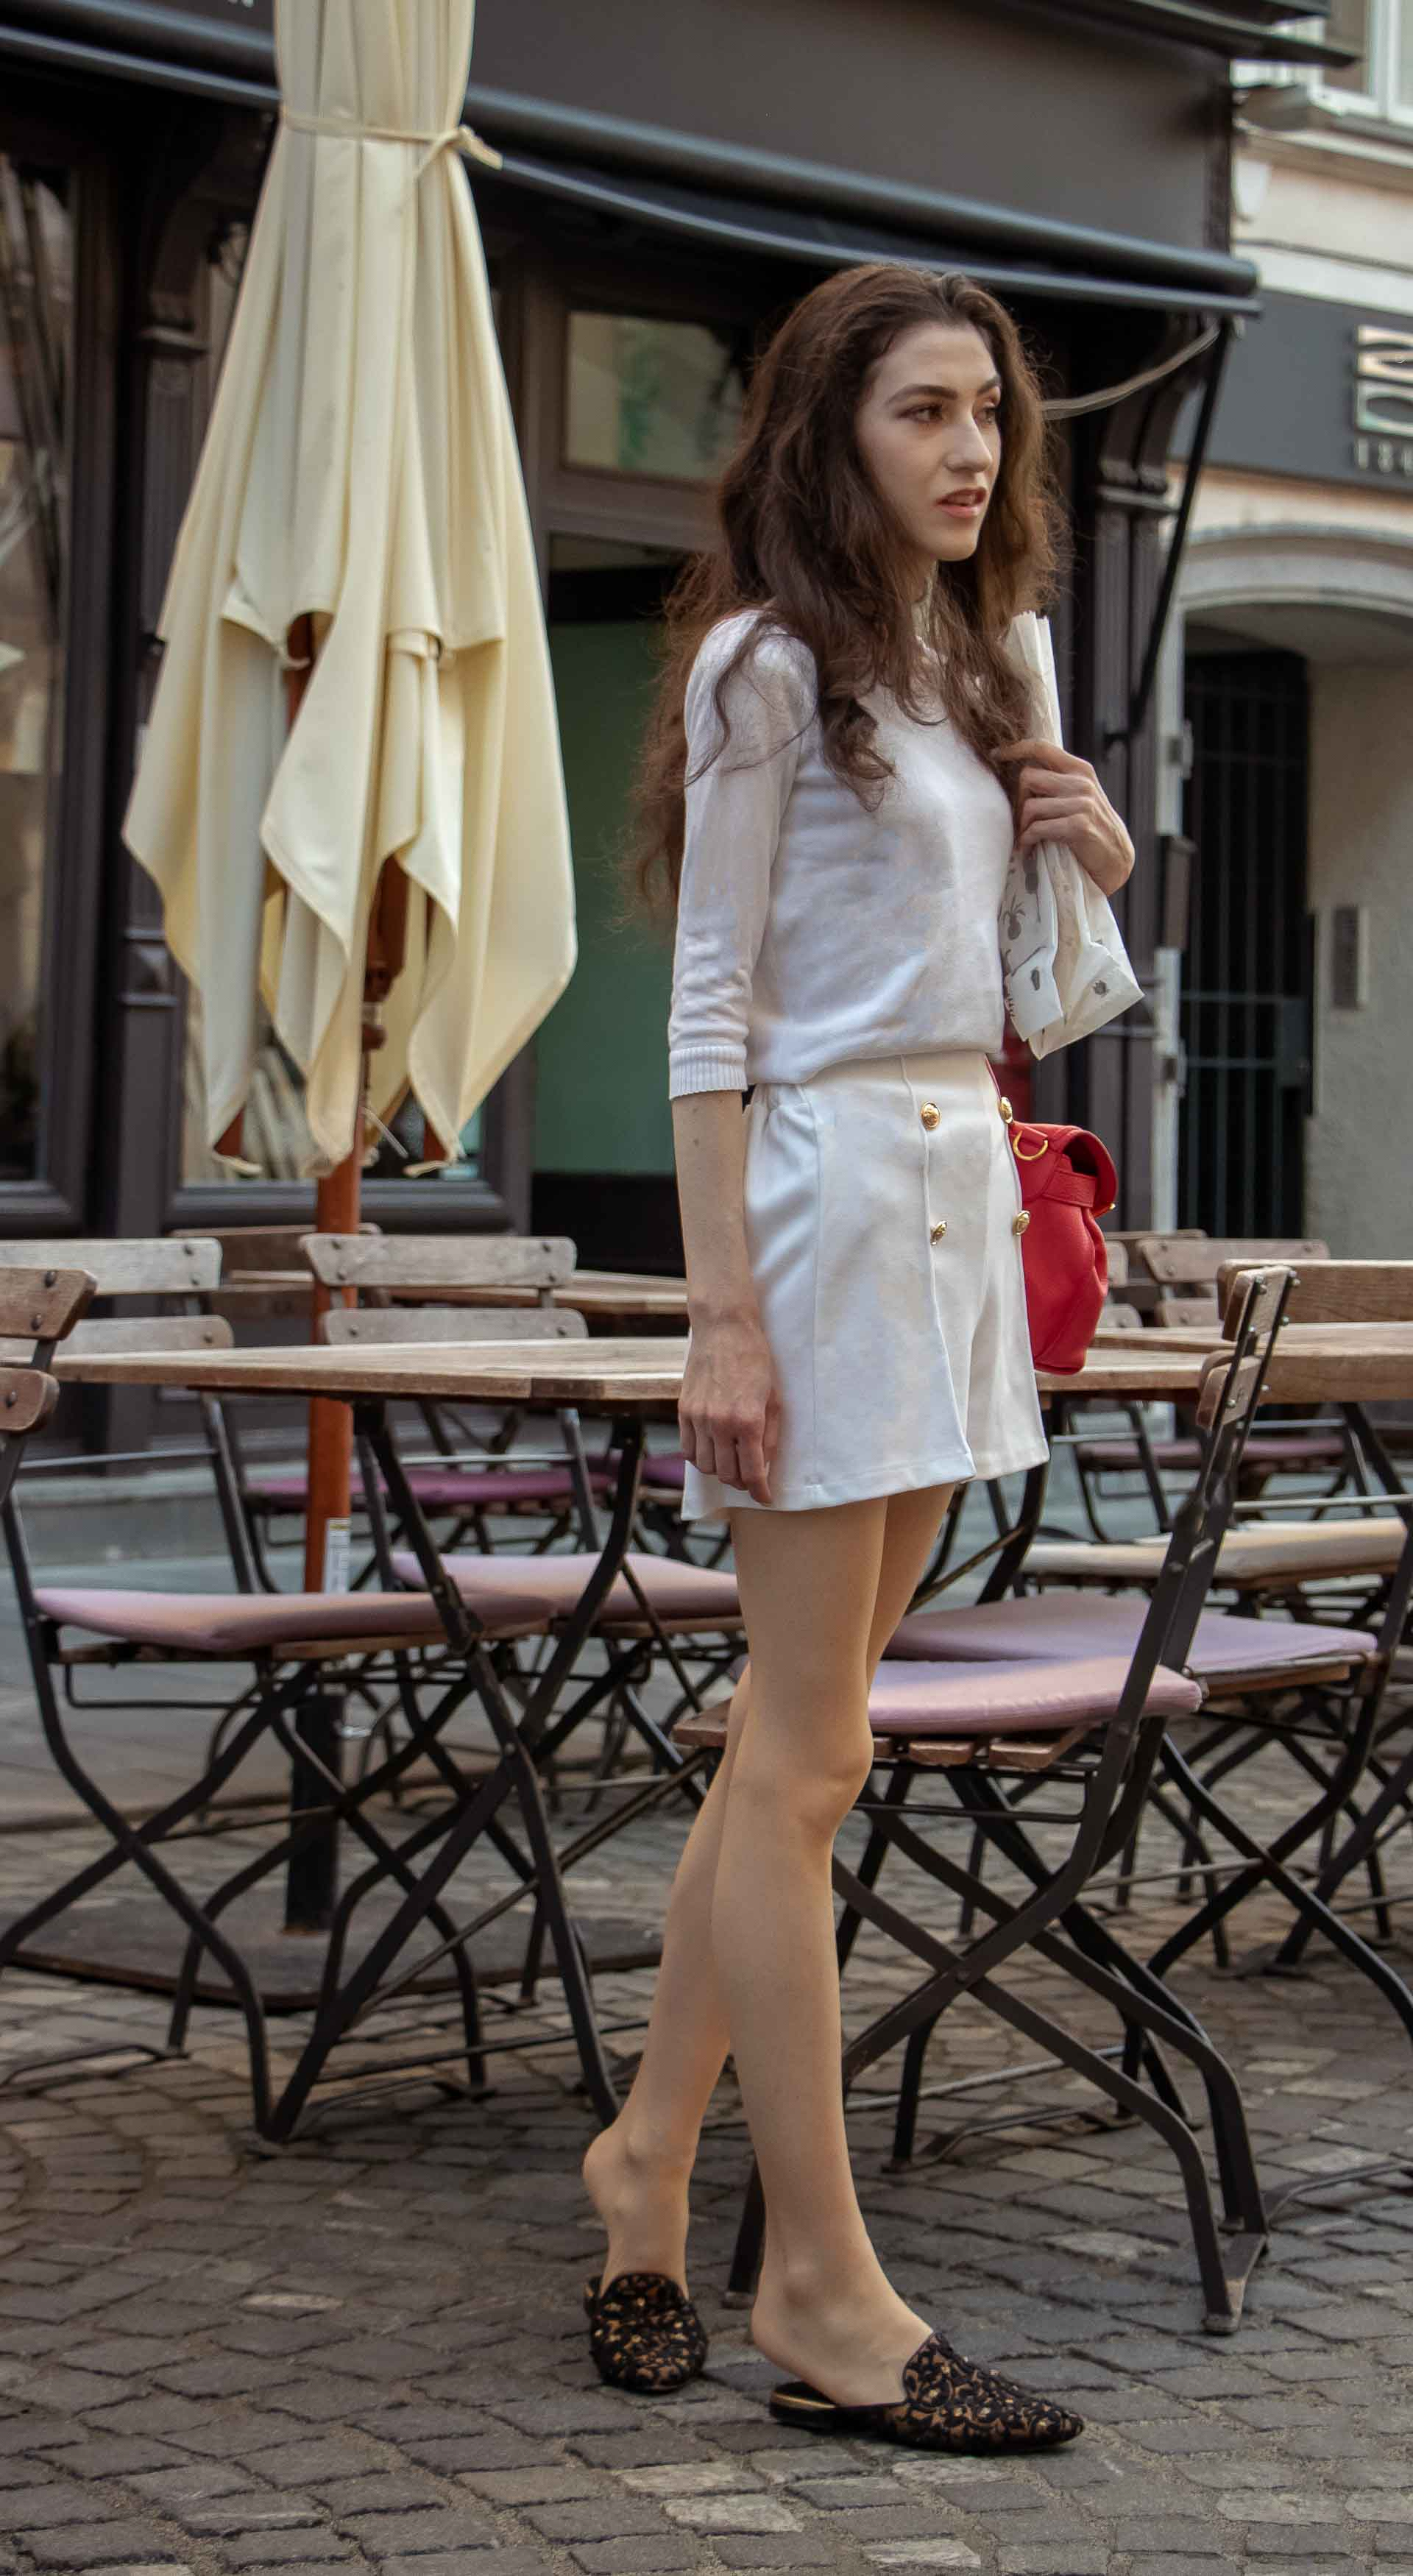 Beautiful Slovenian Fashion Blogger Veronika Lipar of Brunette from Wall wearing all in white outfit, a white sweater, white tailored shorts, black flat slipper mules, pink top handle bag, a paper bag on the street in Ljubljana